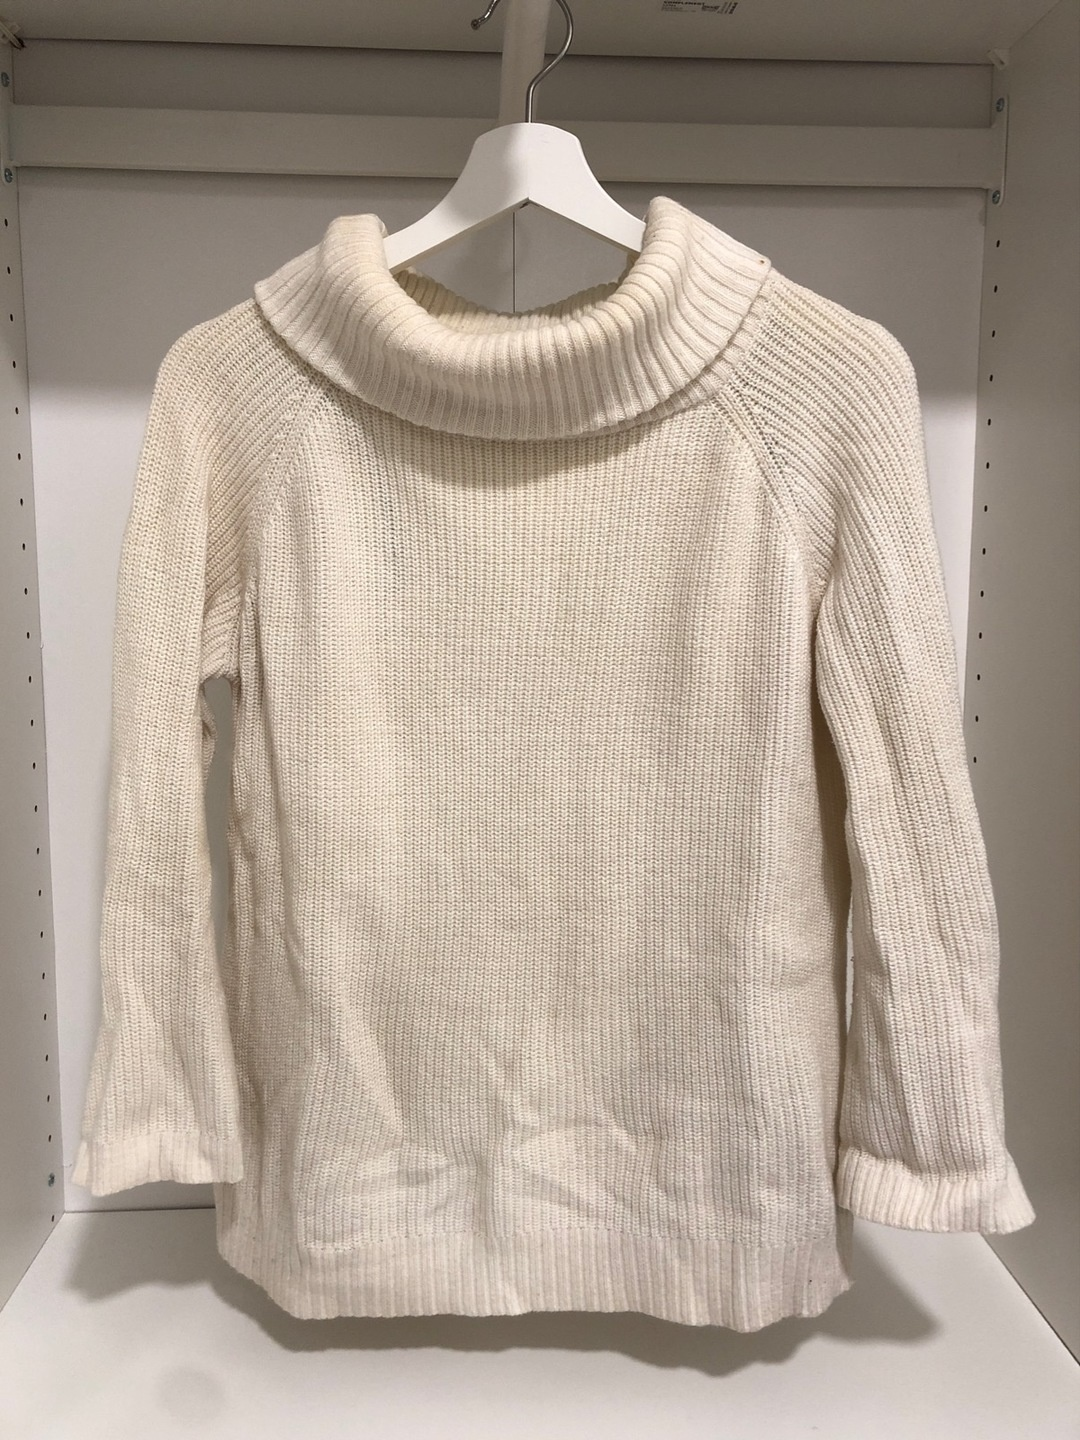 Women's jumpers & cardigans - MASSIMO DUTTI photo 1